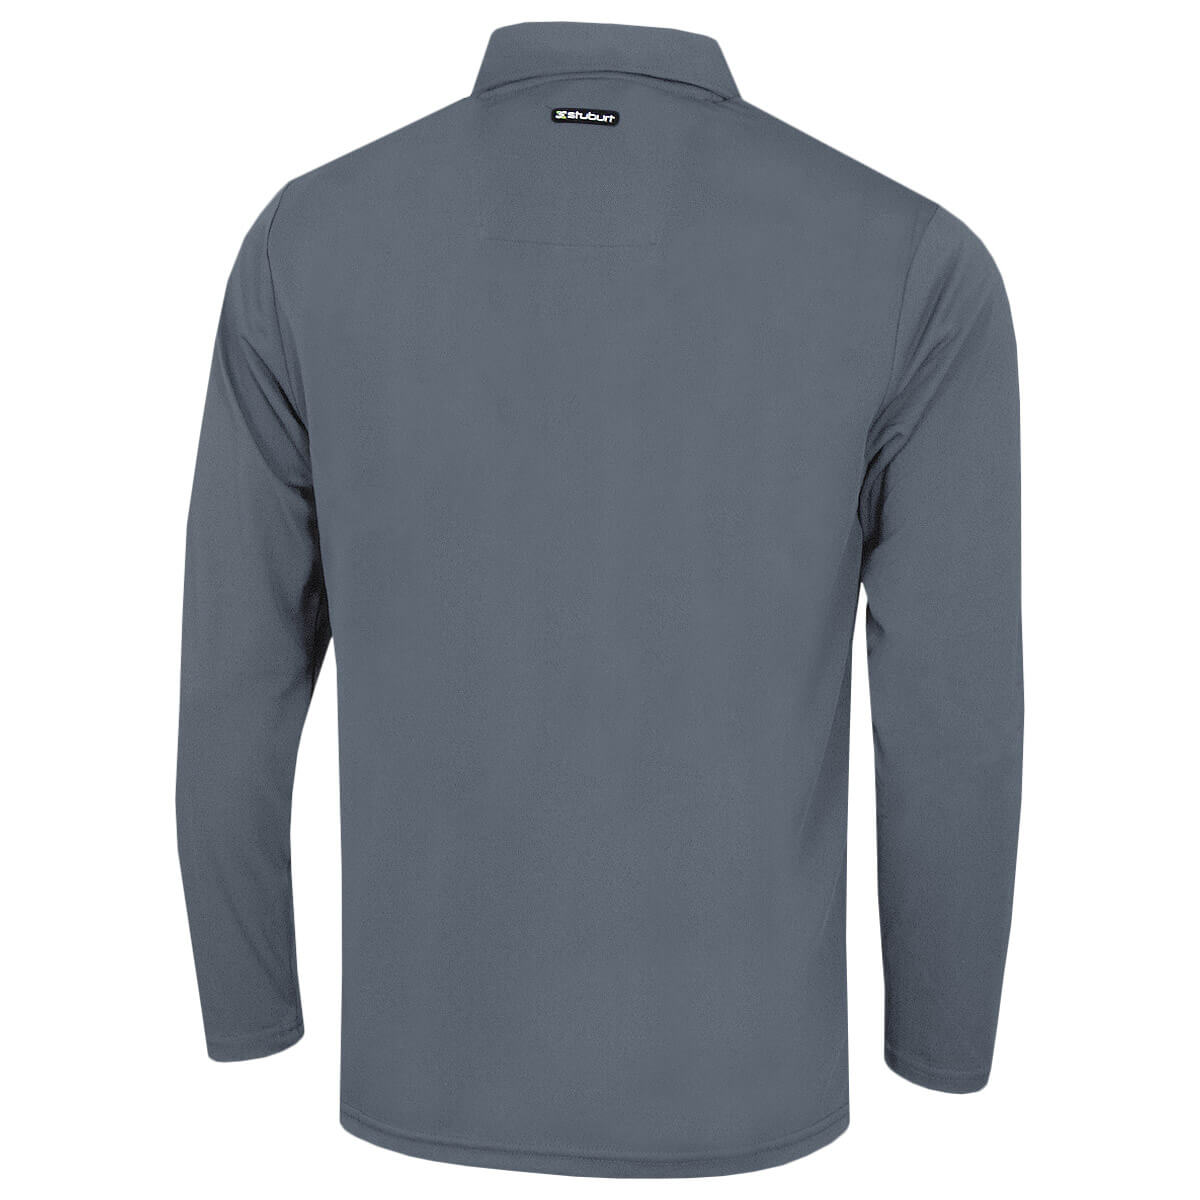 Stuburt-Mens-Urban-Long-Sleeve-Wicking-Breathable-Golf-Polo-Shirt-33-OFF-RRP thumbnail 17